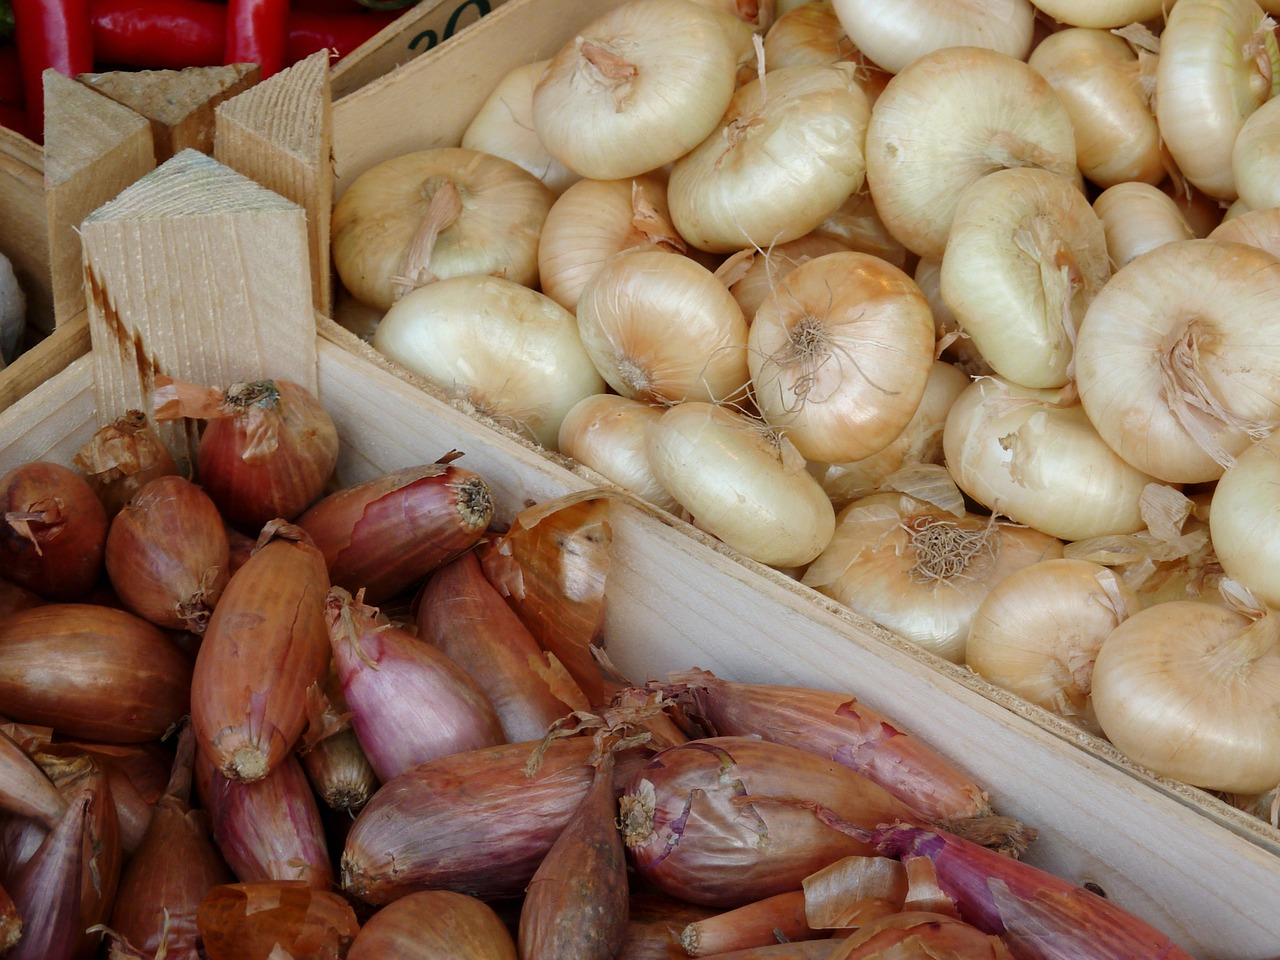 onion,vegetables,market,food,vegetable onion,spring onion,plant,leek,market fresh vegetables,red onions vegetables,free pictures, free photos, free images, royalty free, free illustrations, public domain